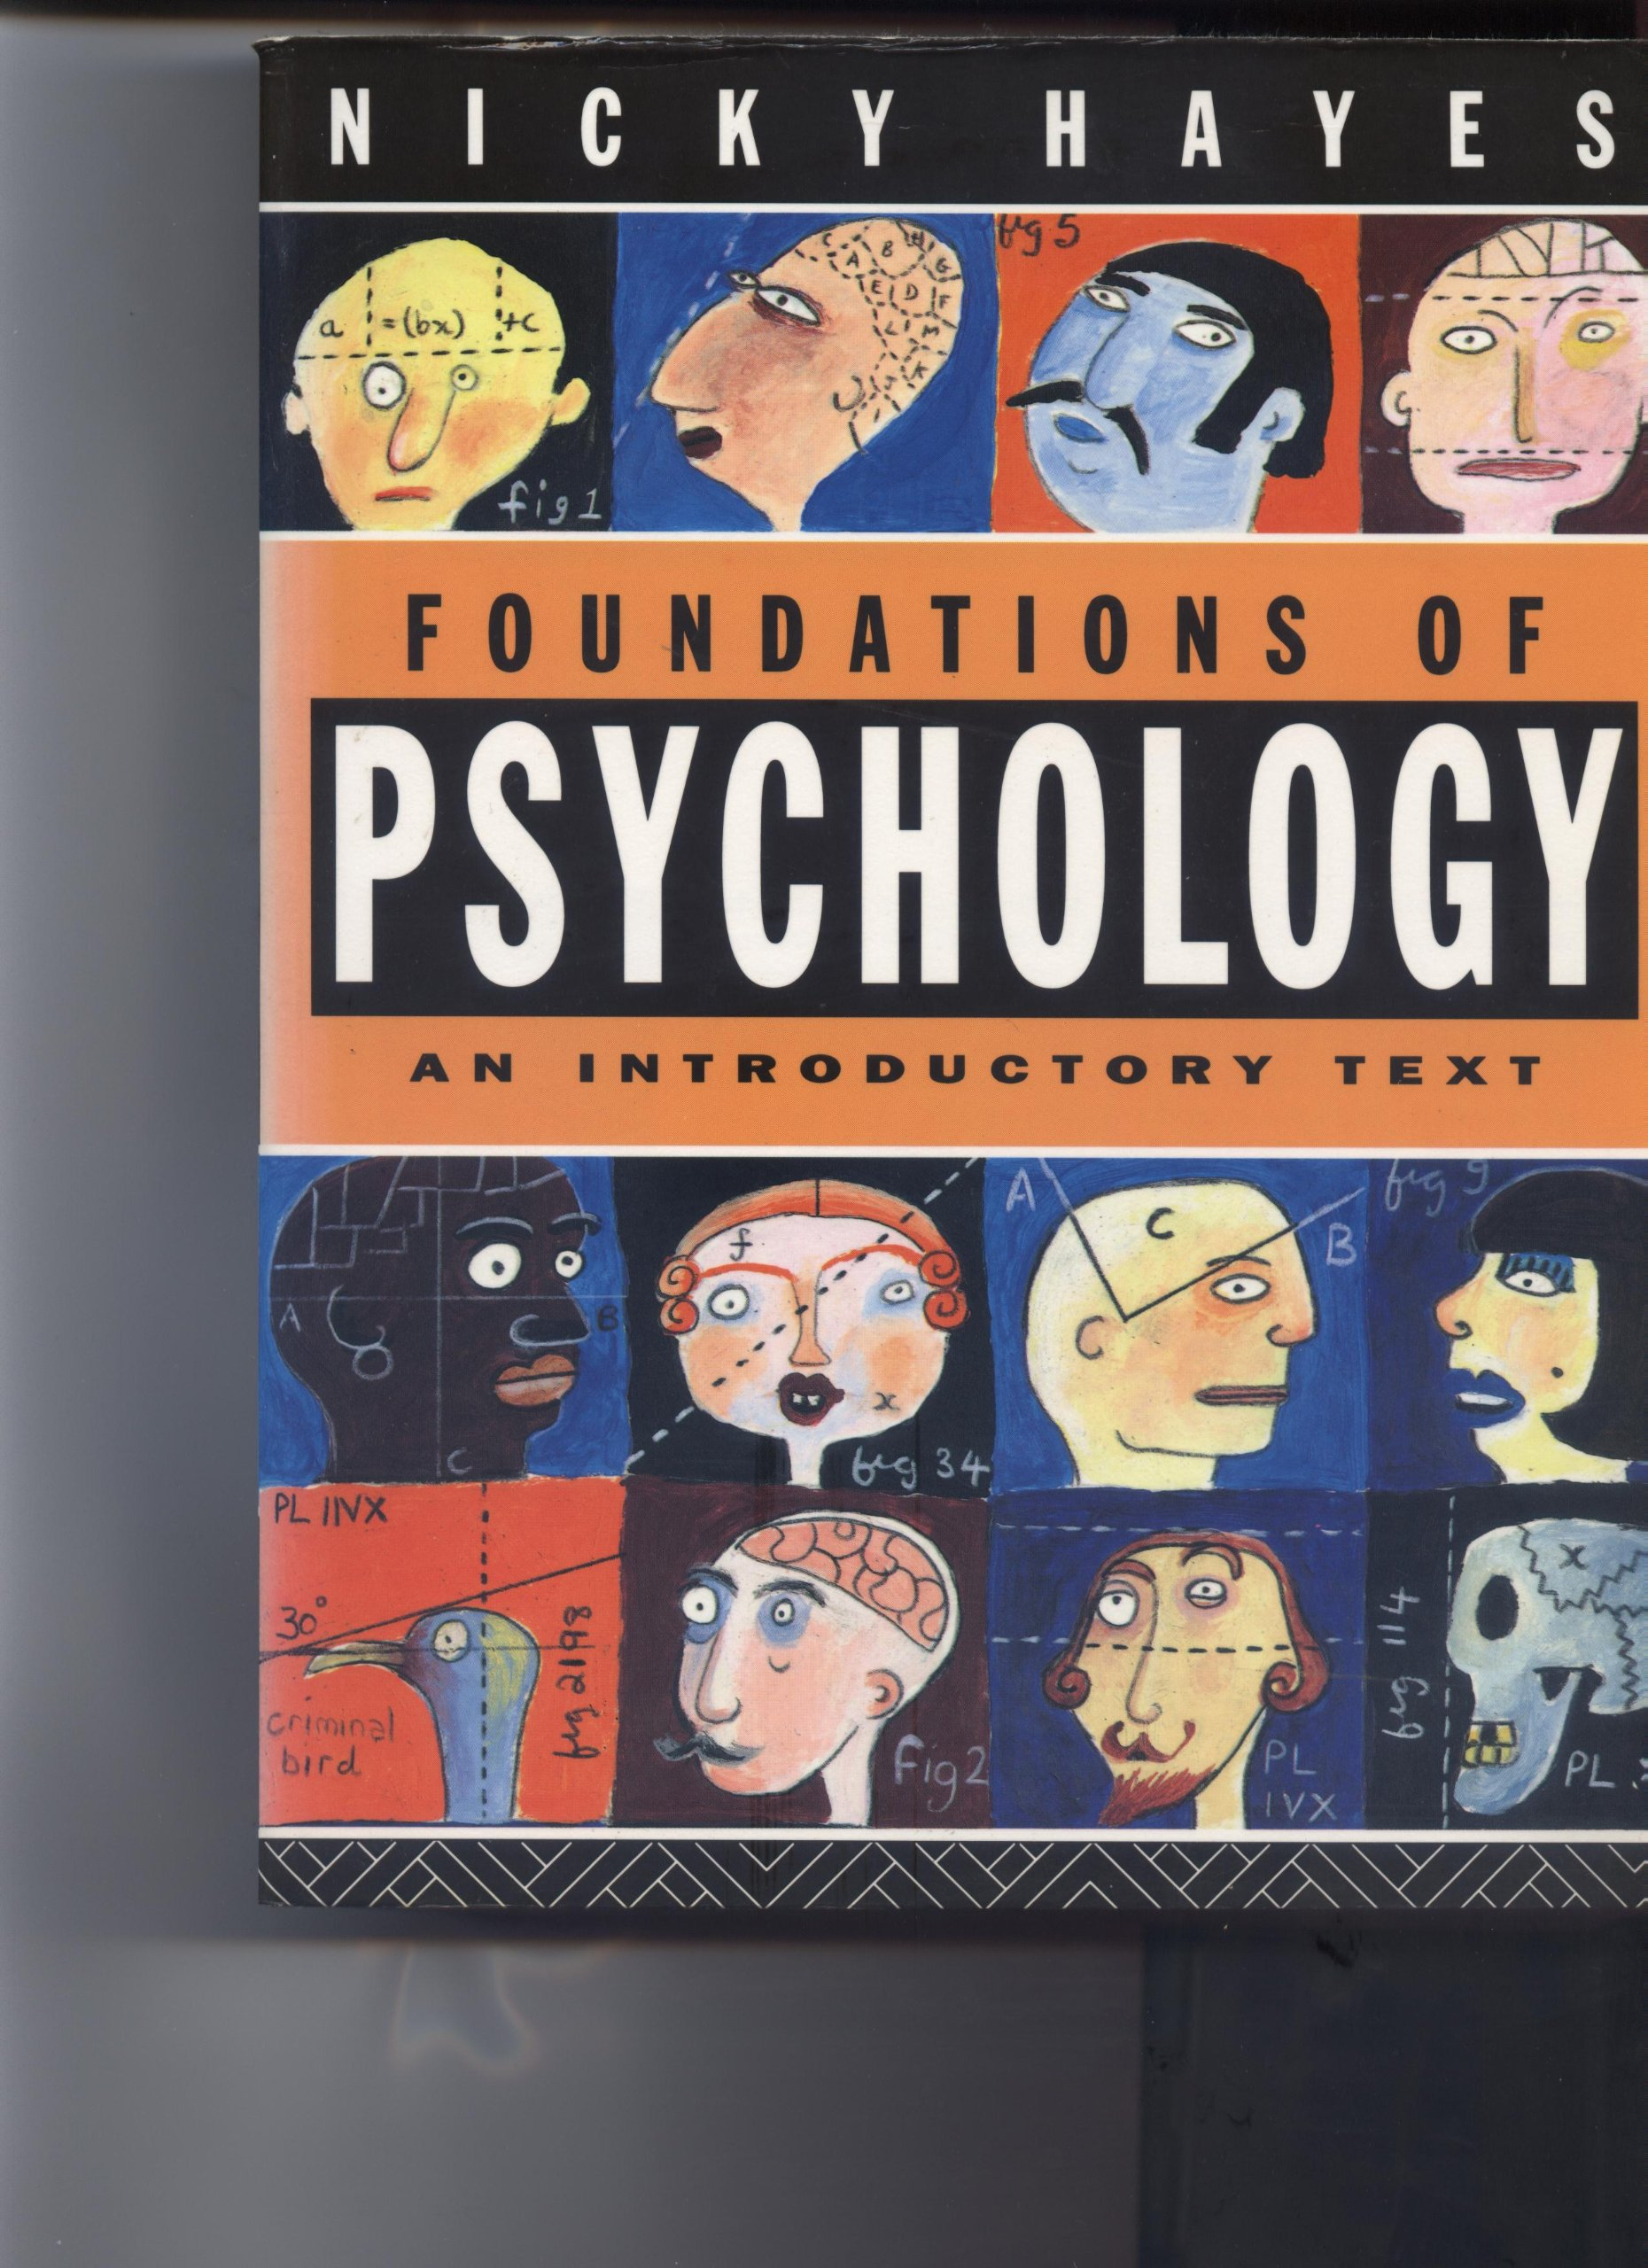 Foundations of Psychology: An Introductory Text: Amazon.co.uk: Nicky Hayes: 9780415015615: Books